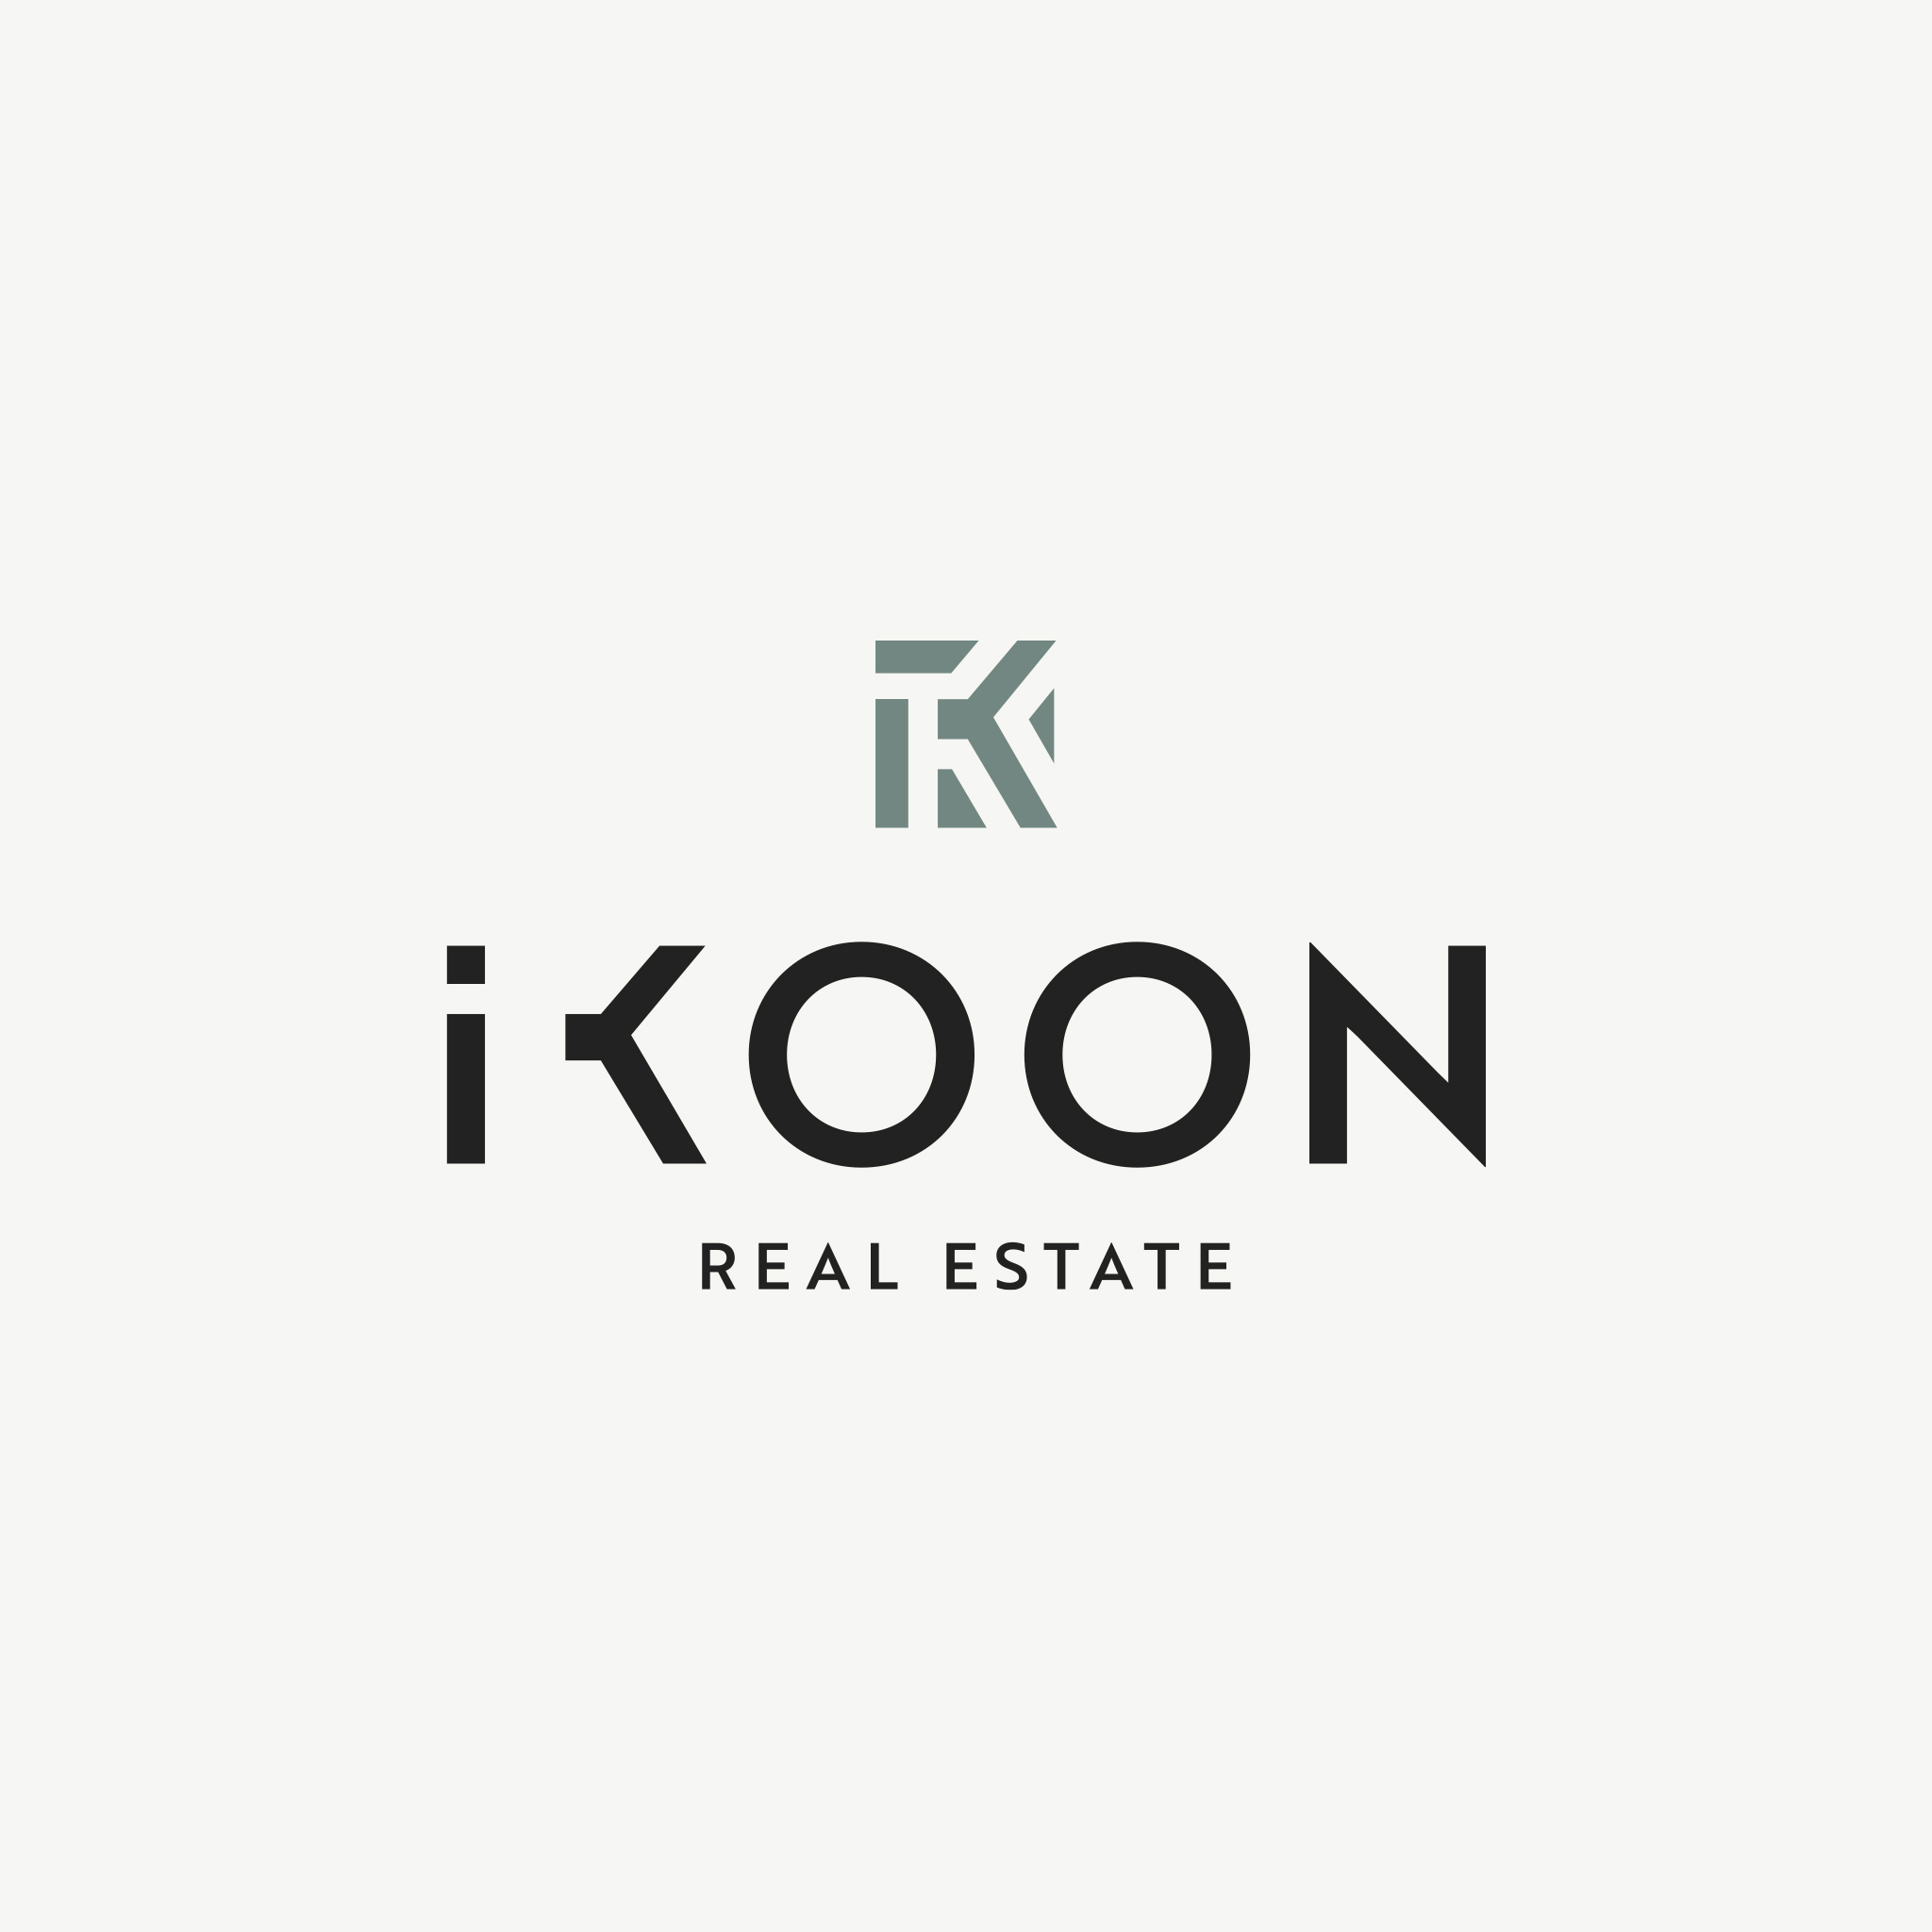 ikoon real estate logo